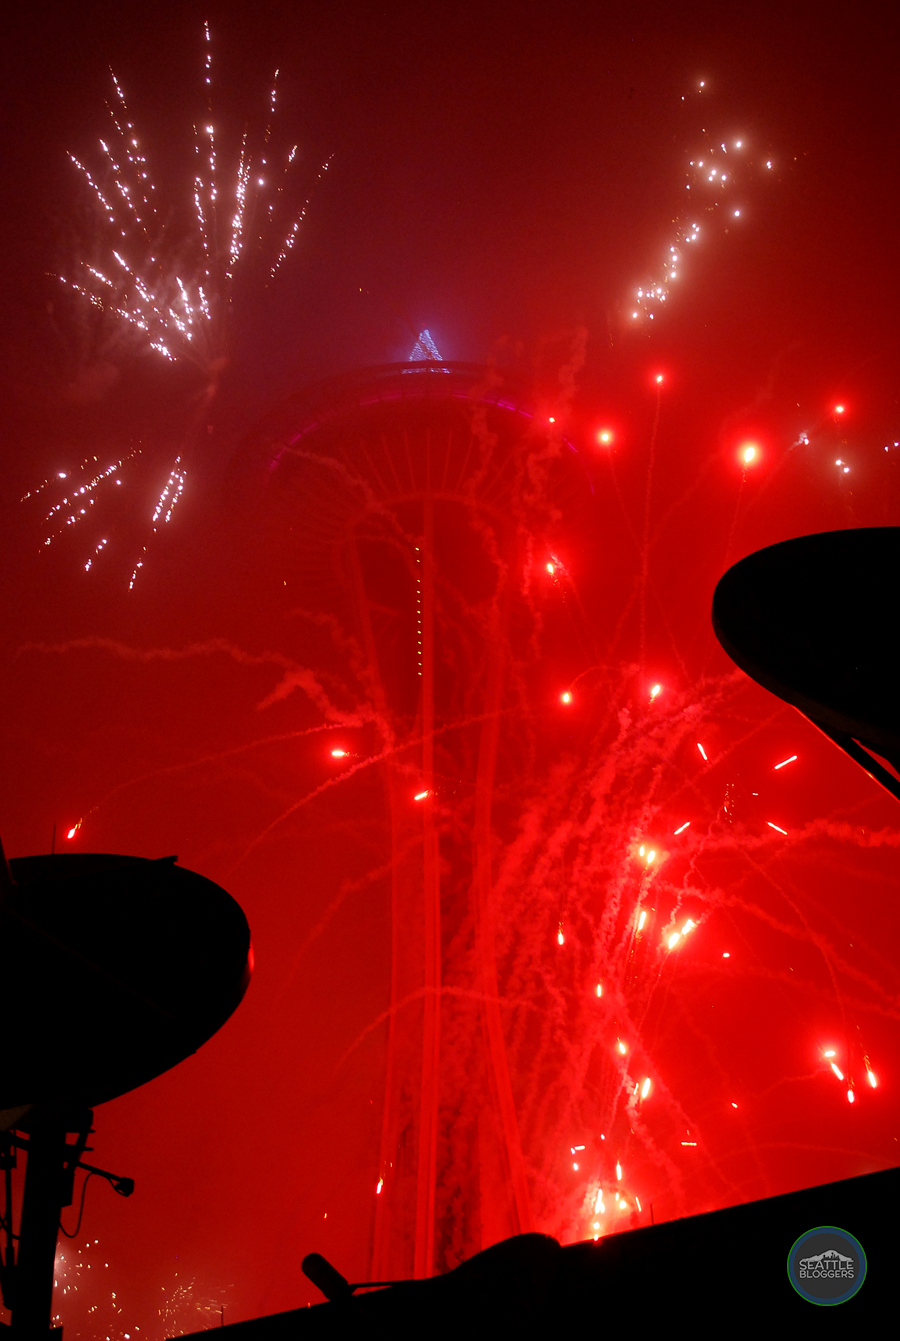 New Years Time Capsule Printable Questionnaire For Kids: New Year's Eve In Seattle At The Space Needle